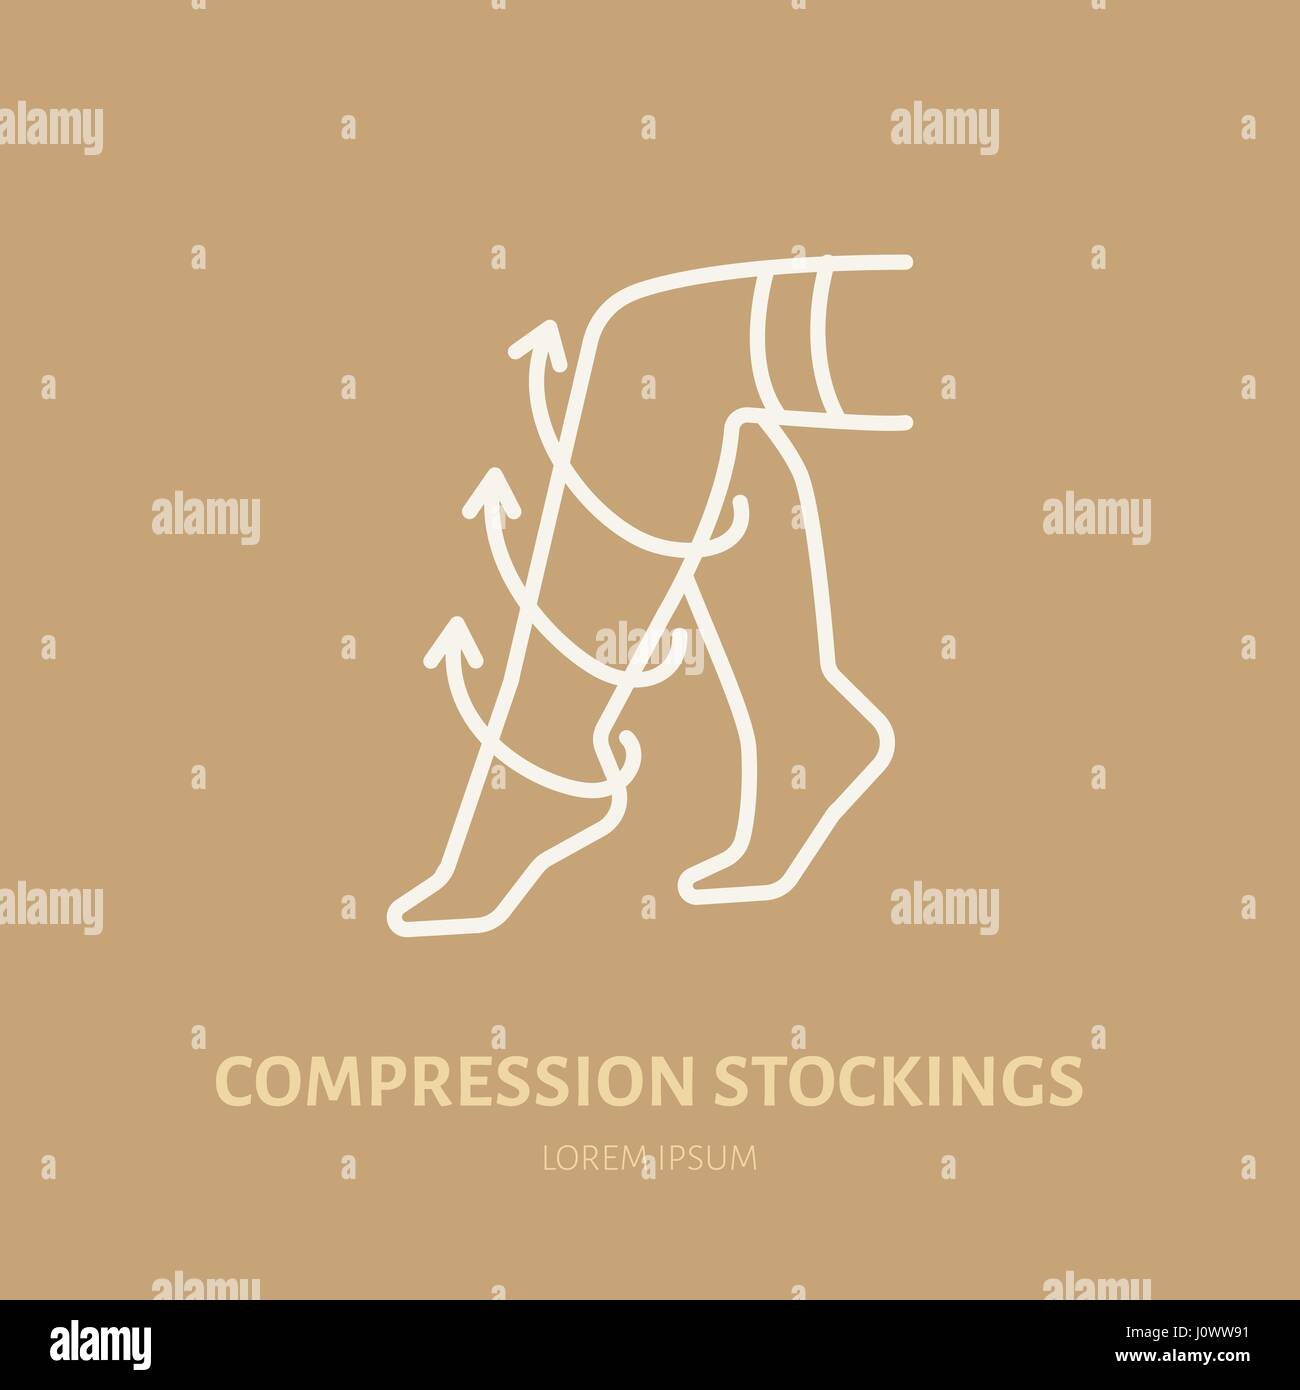 Compression stockings icon, line logo. Flat sign for surgery rehabilitation equipment shop - Stock Image